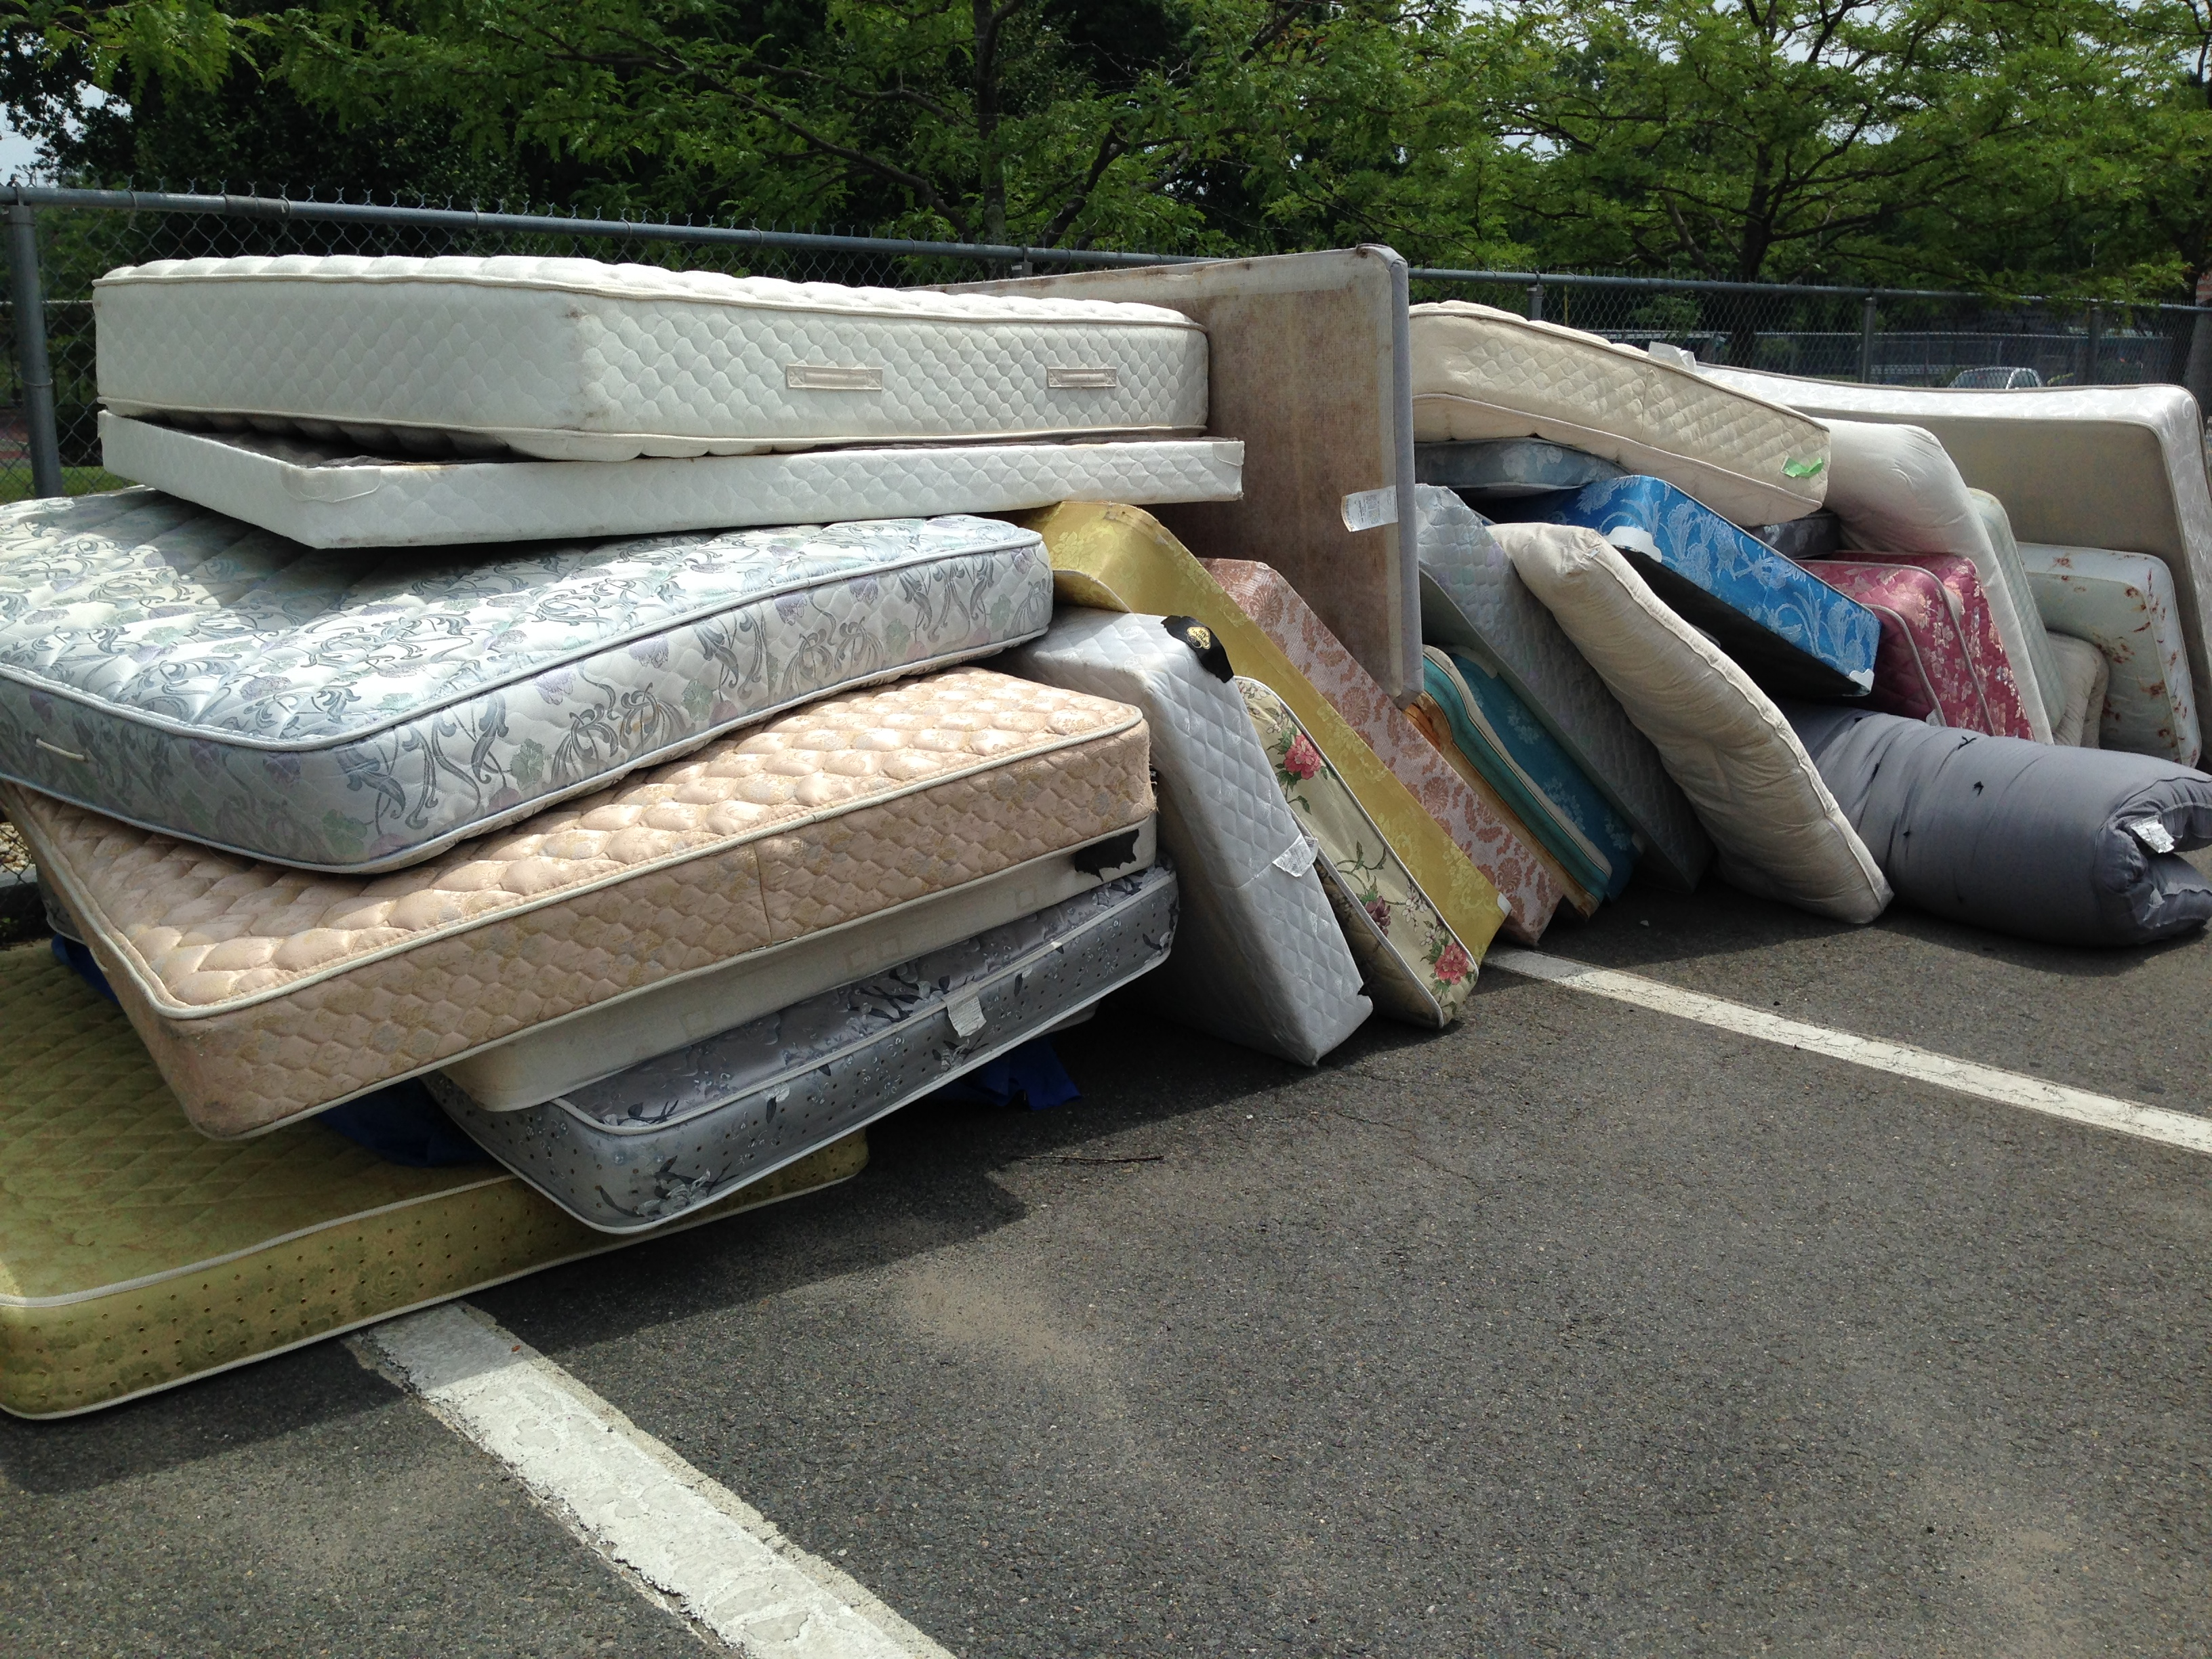 How To Dispose Of A Used Mattress How To Dispose Of An